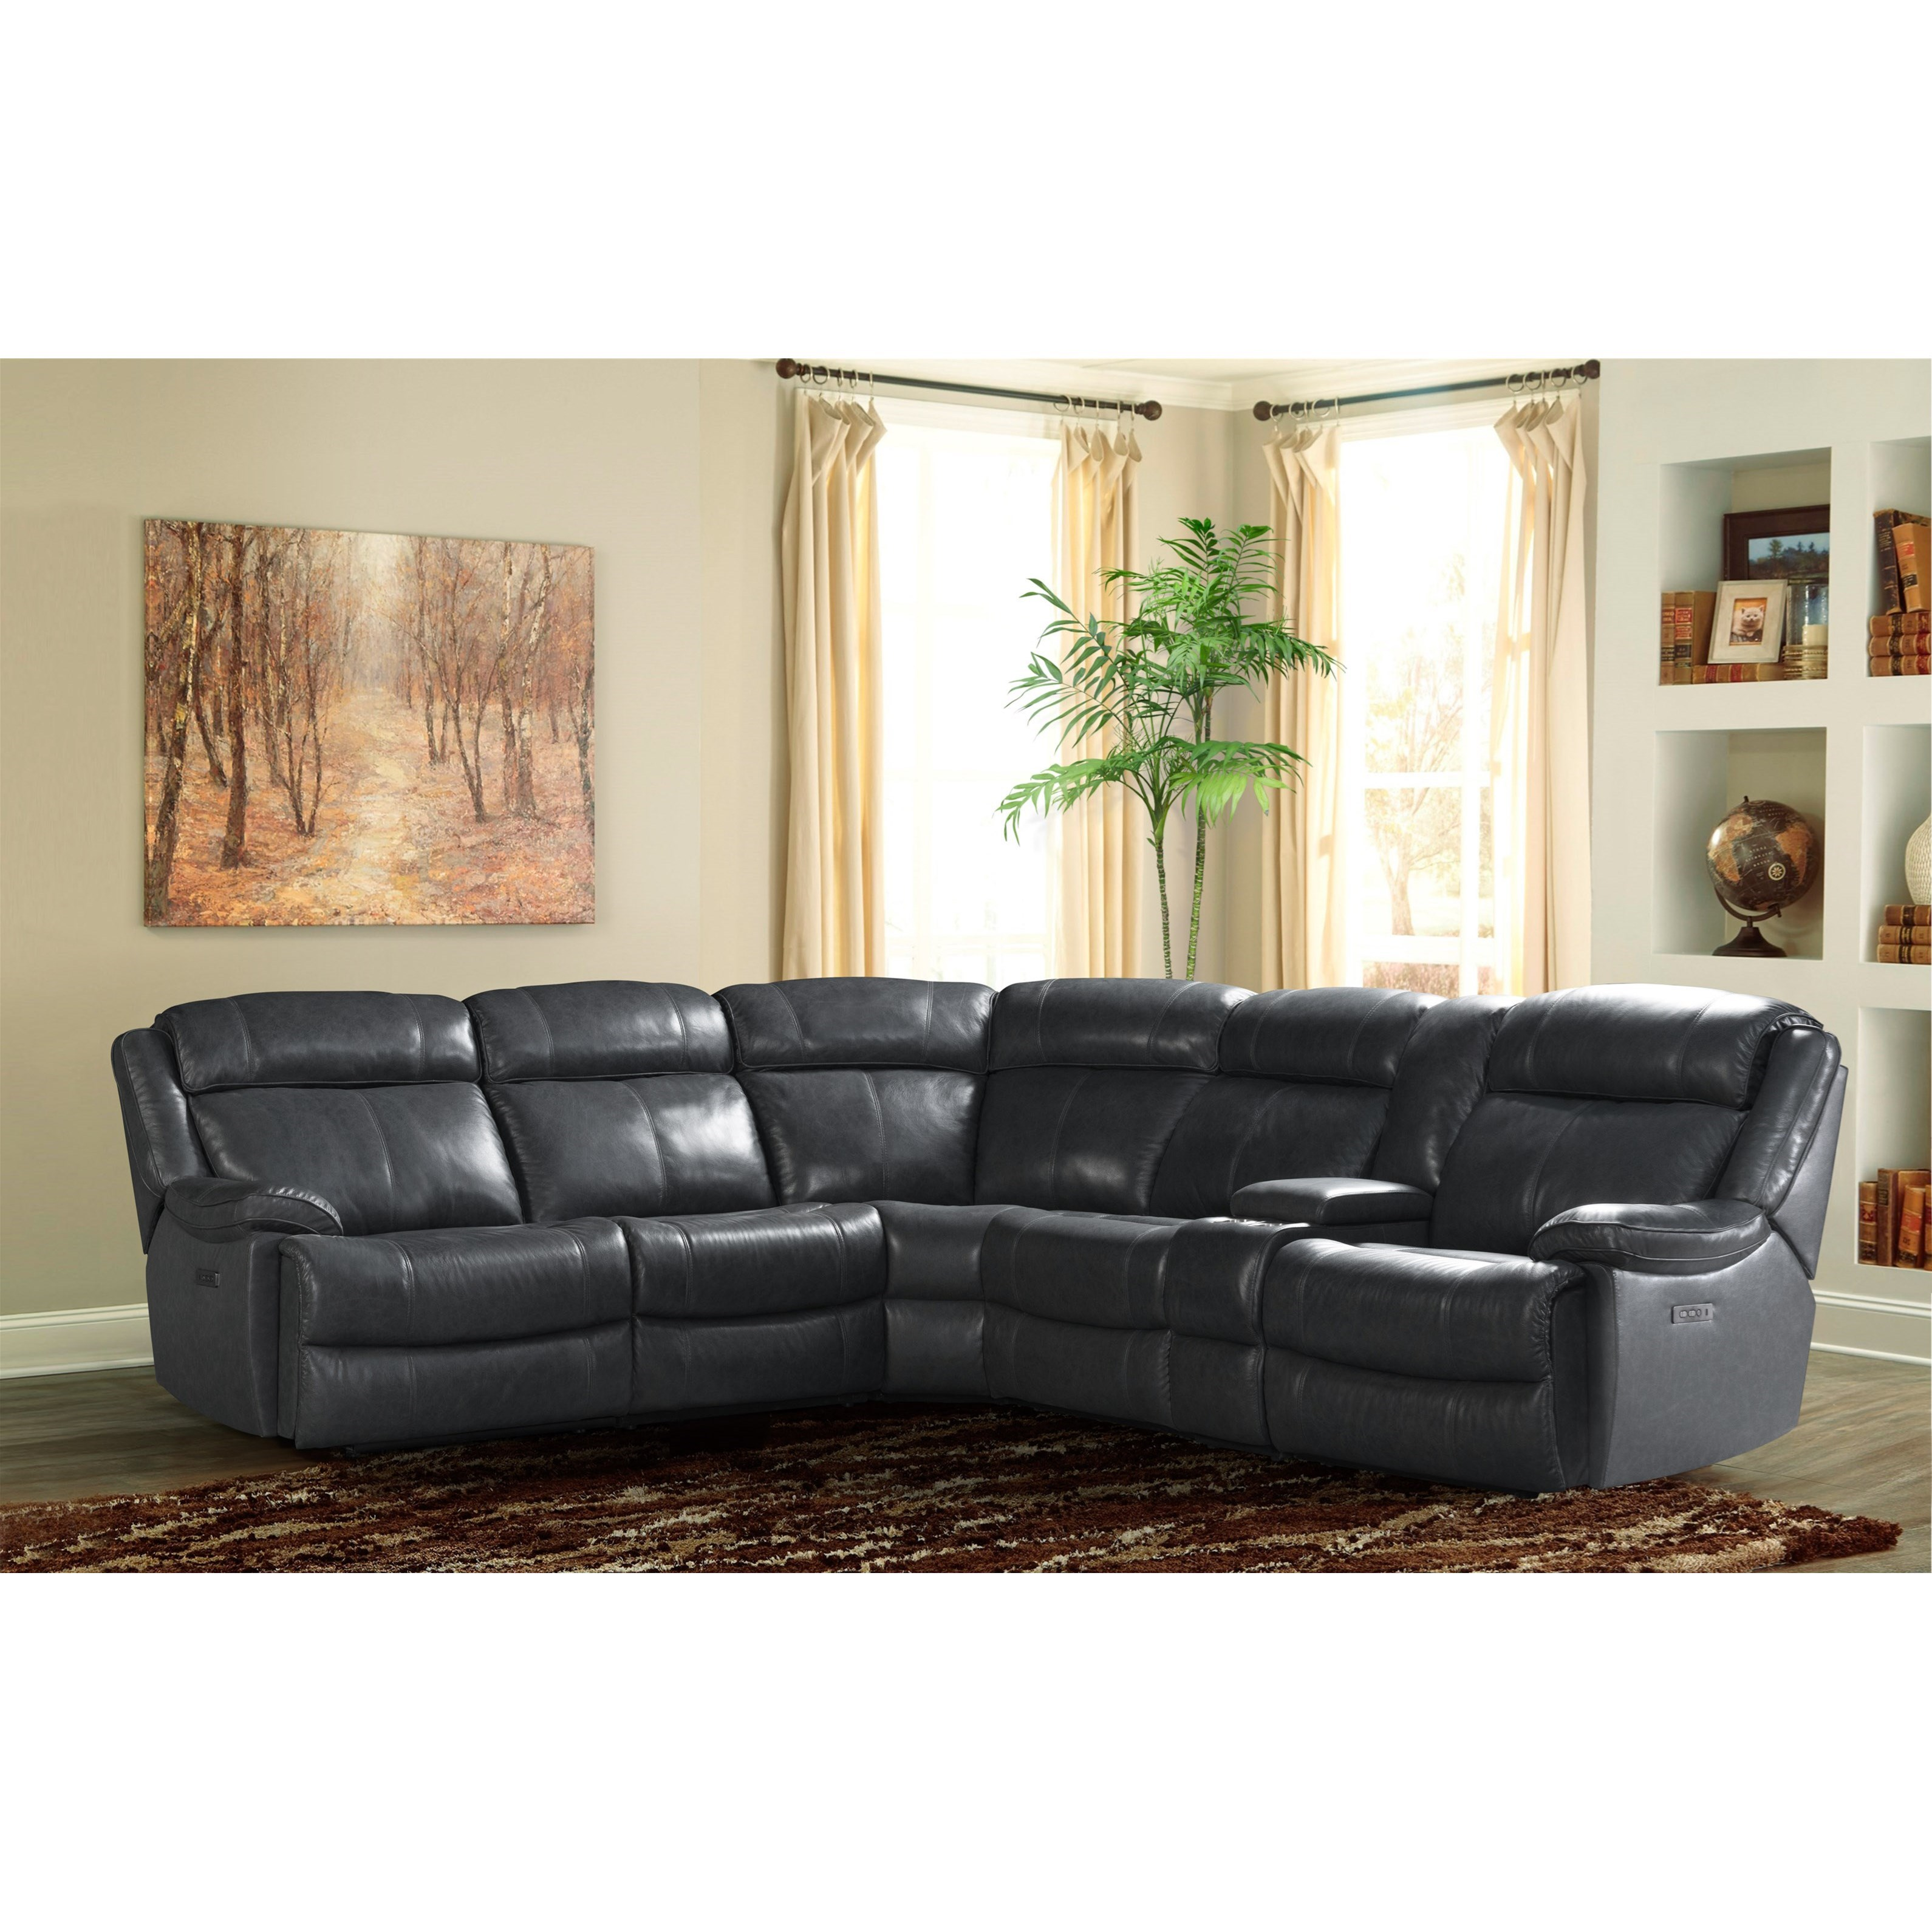 Avalon Dual Power Reclining Sectional Sofa by Intercon at Fisher Home Furnishings